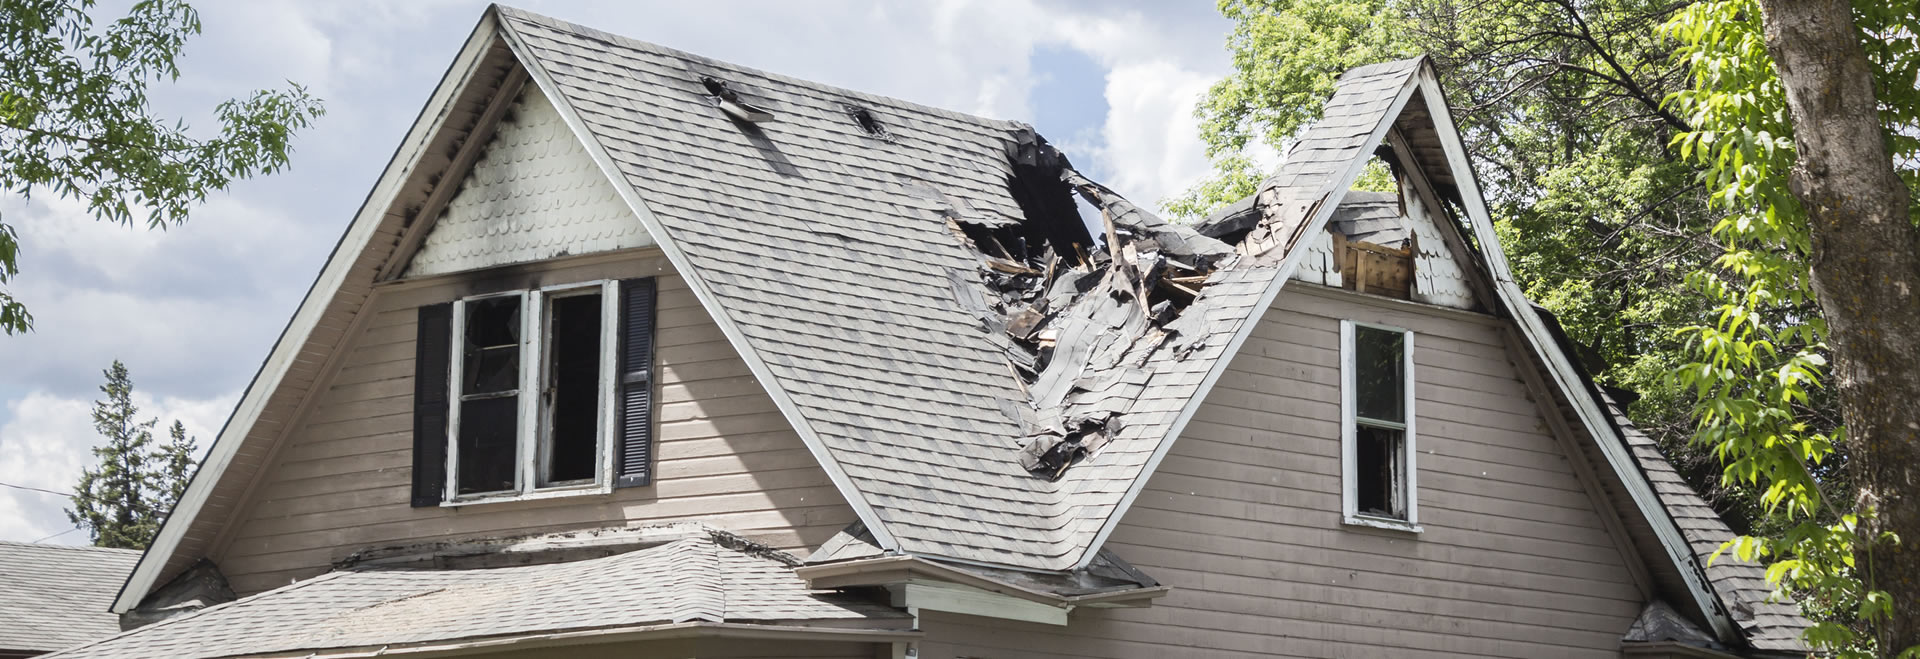 fire damage roof repair monroe ga